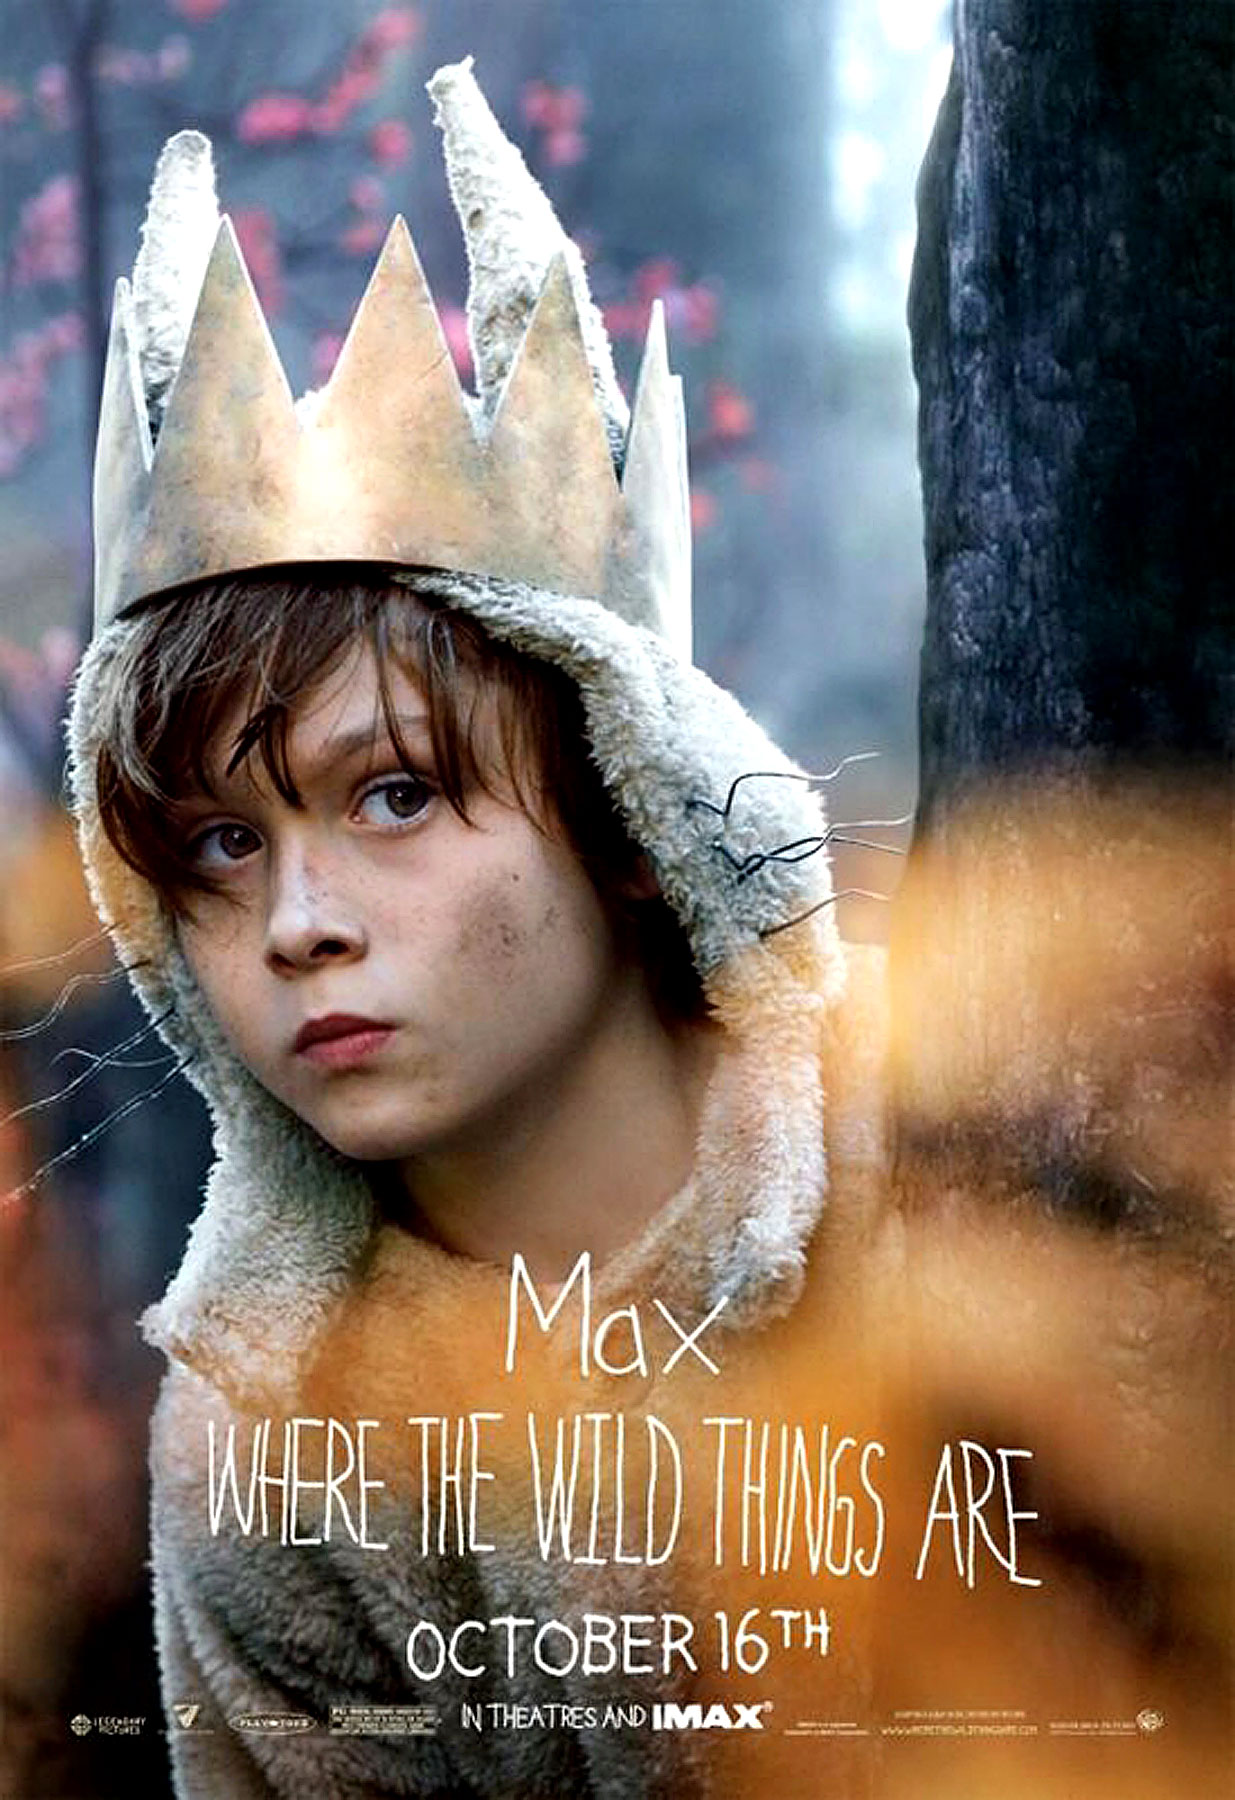 'Where the Wild Things Are' Character Posters